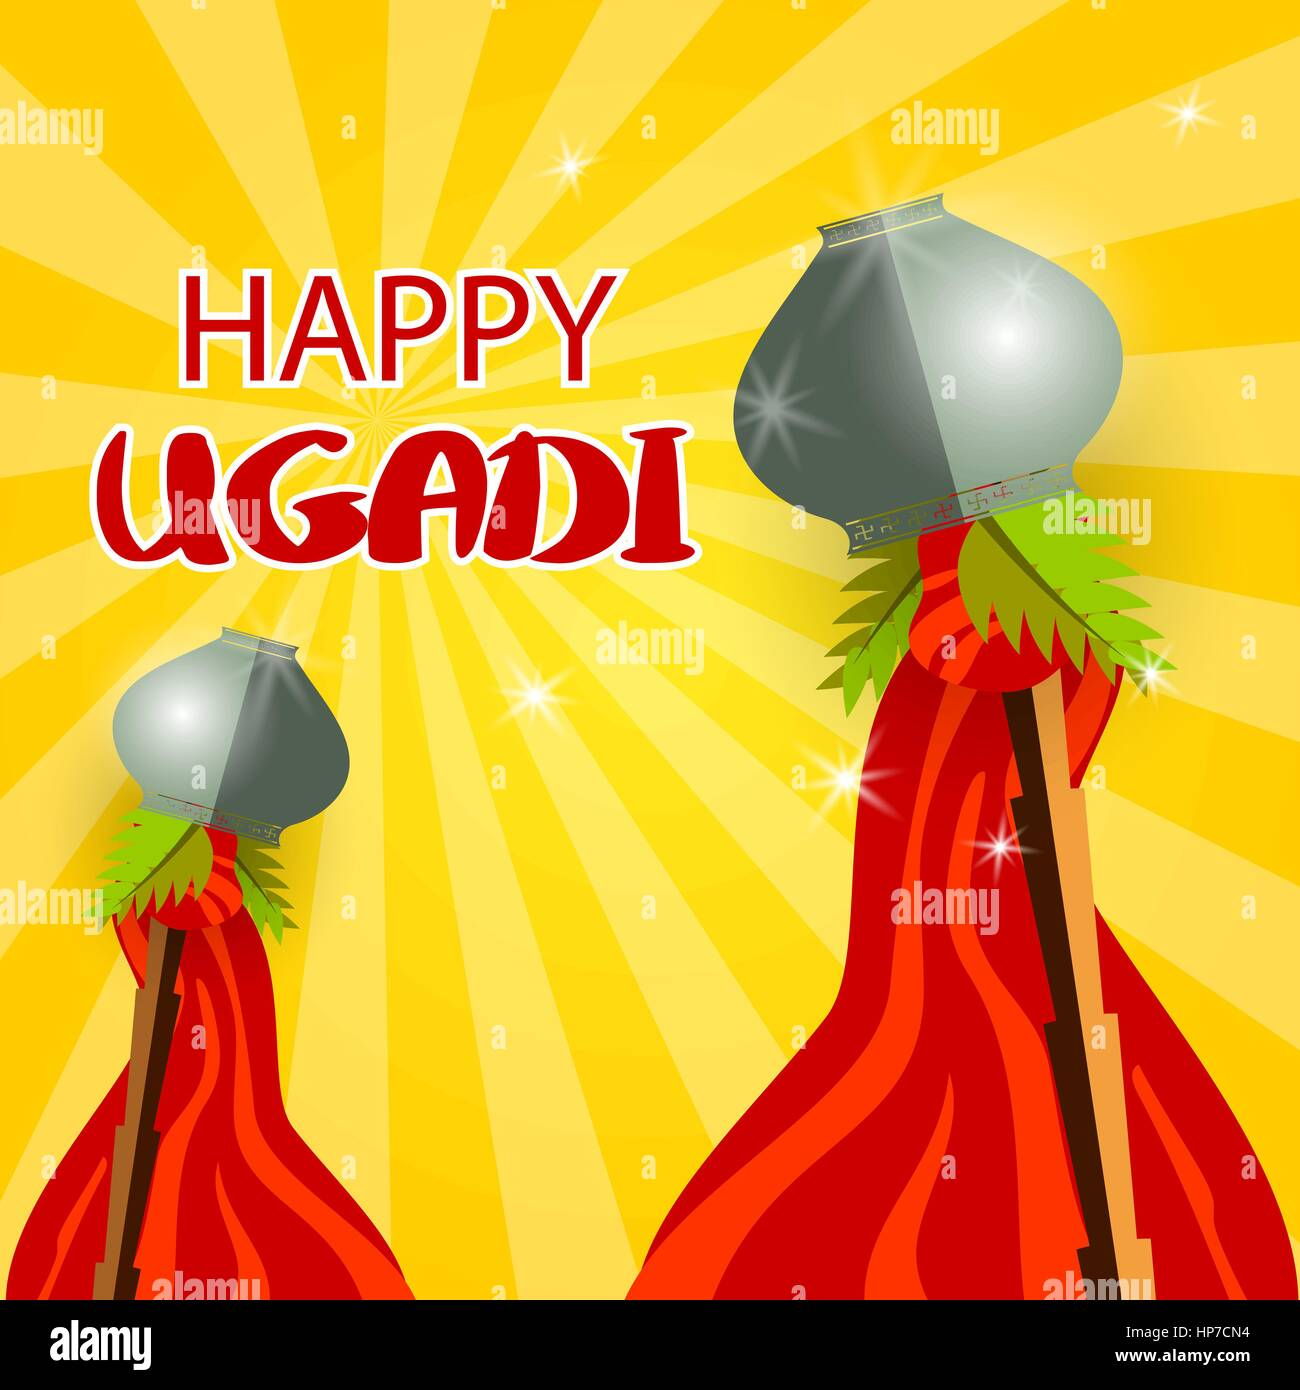 Happy ugadi celebration of india vector illustration background happy ugadi celebration of india vector illustration background happy gudi padwa lettering template greeting card holiday grey festive pot bamboo m4hsunfo